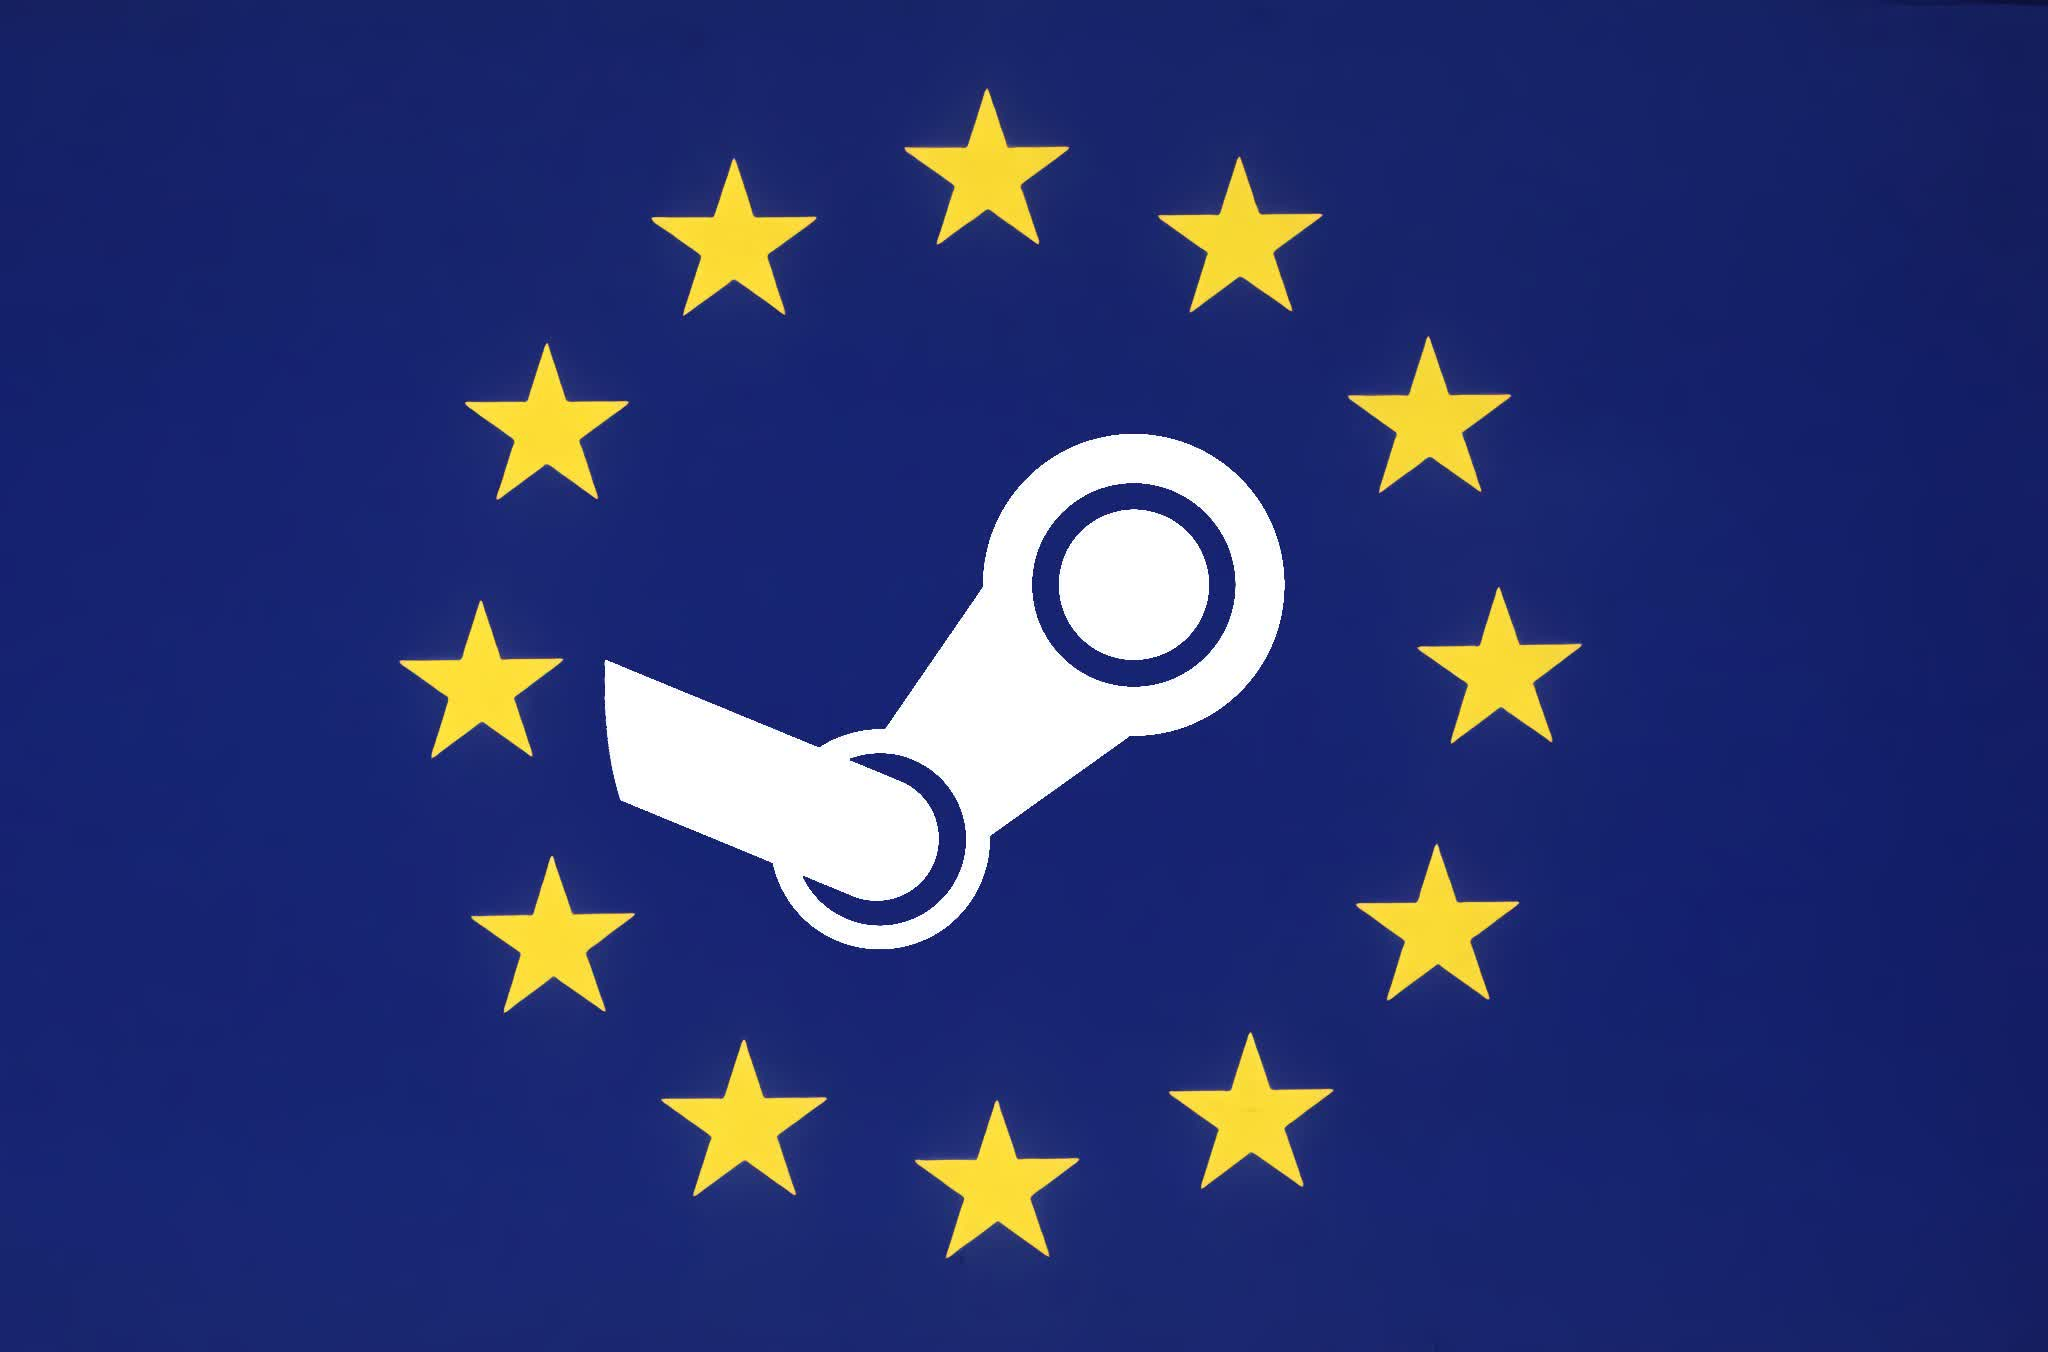 European Commission levies $9.5 million in fines for 'geo-blocked' Steam games